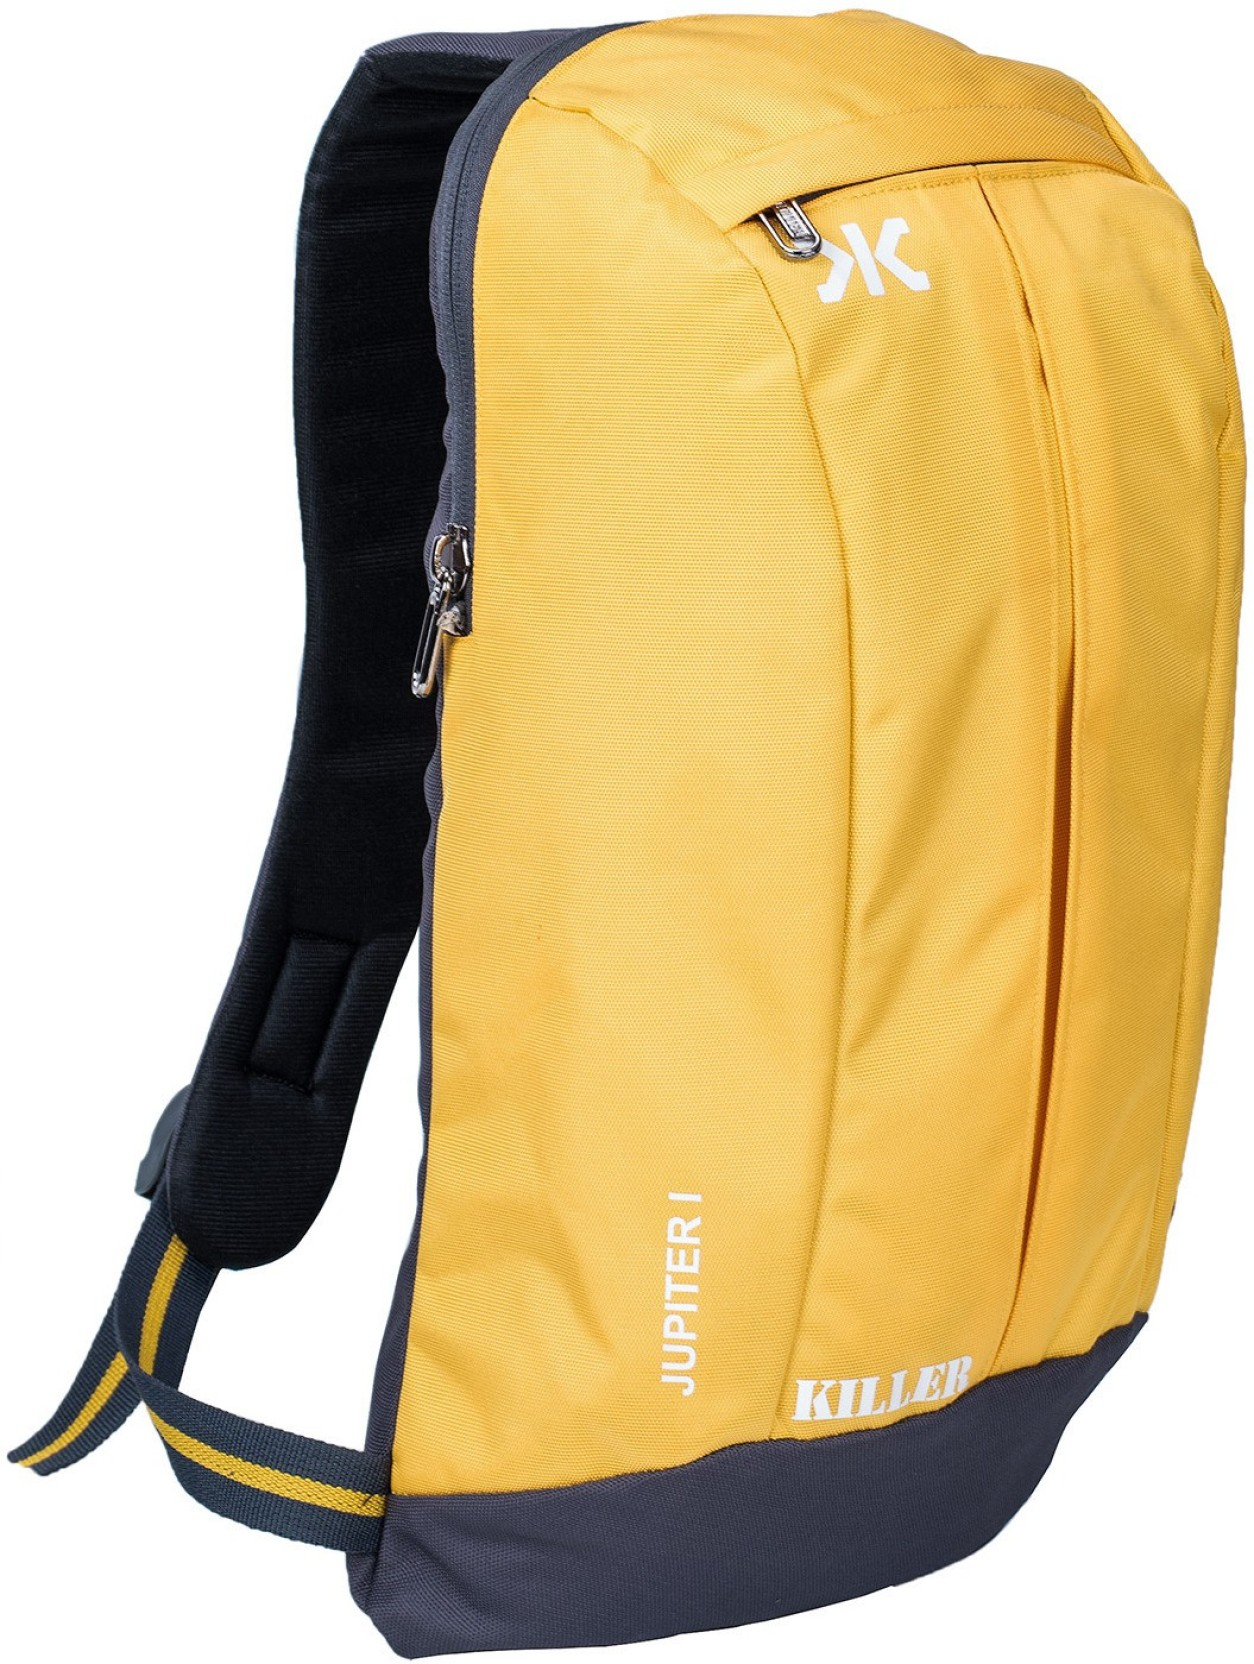 af8b662c8b04 Killer Yellow Small Outdoor Mini Backpack 12L Daypack 12.0 Backpack. Home